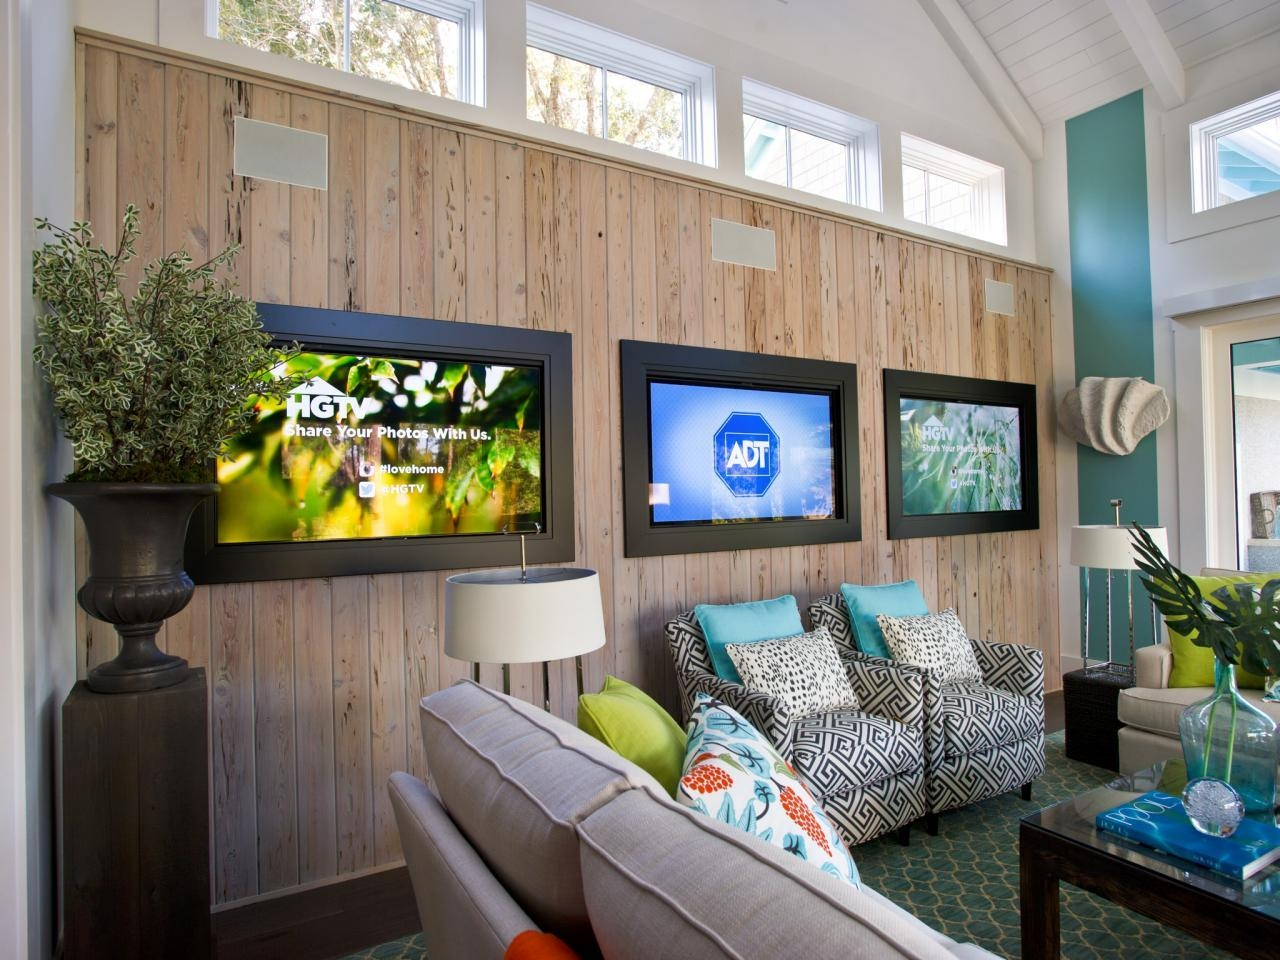 Basement Home Theaters And Media Rooms: Pictures, Tips & Ideas | Hgtv Within Media Room Wall Art (Image 1 of 20)